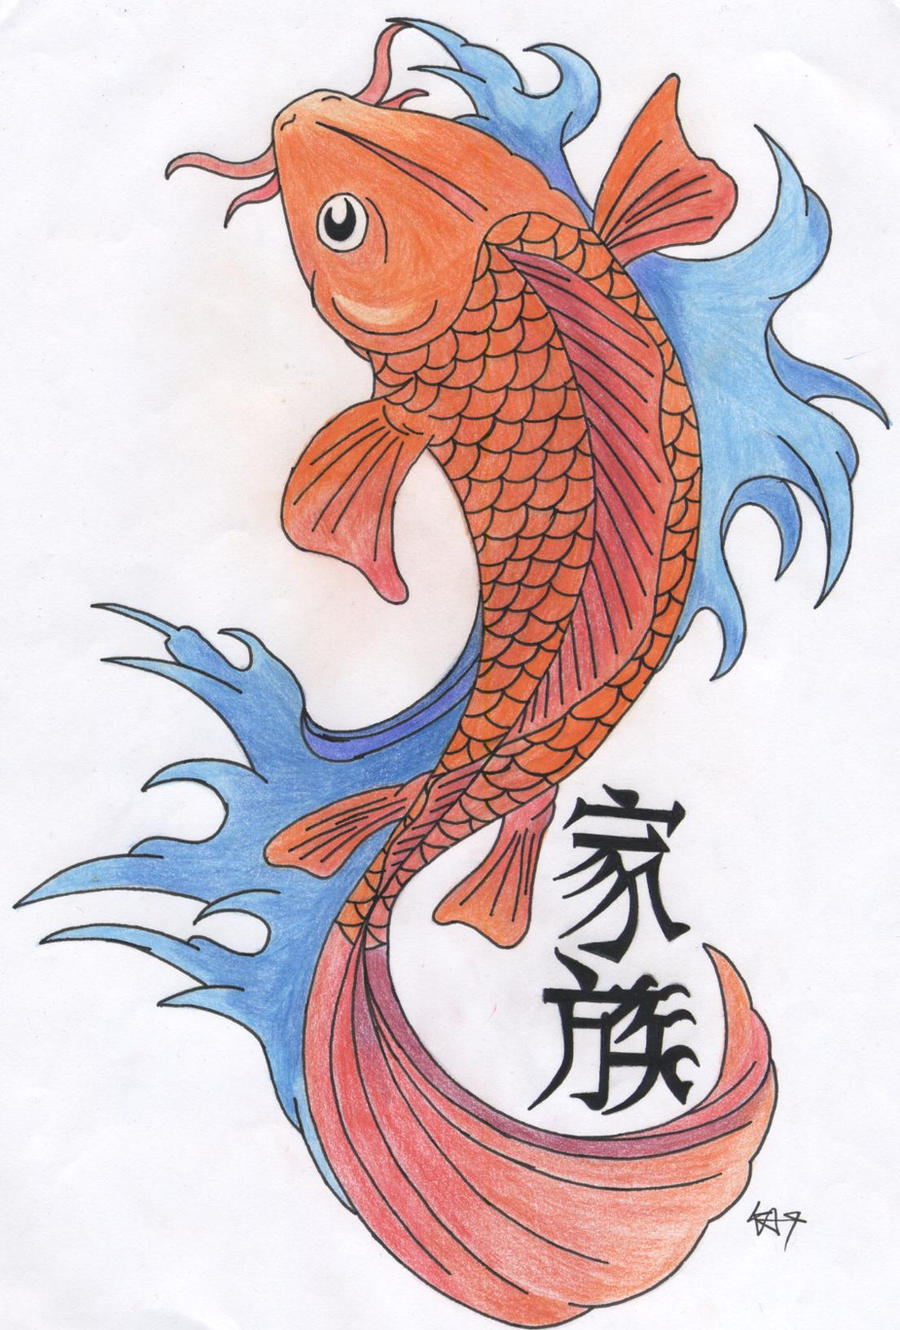 Color koi fish by katskratch19 on deviantart for What is a koi fish